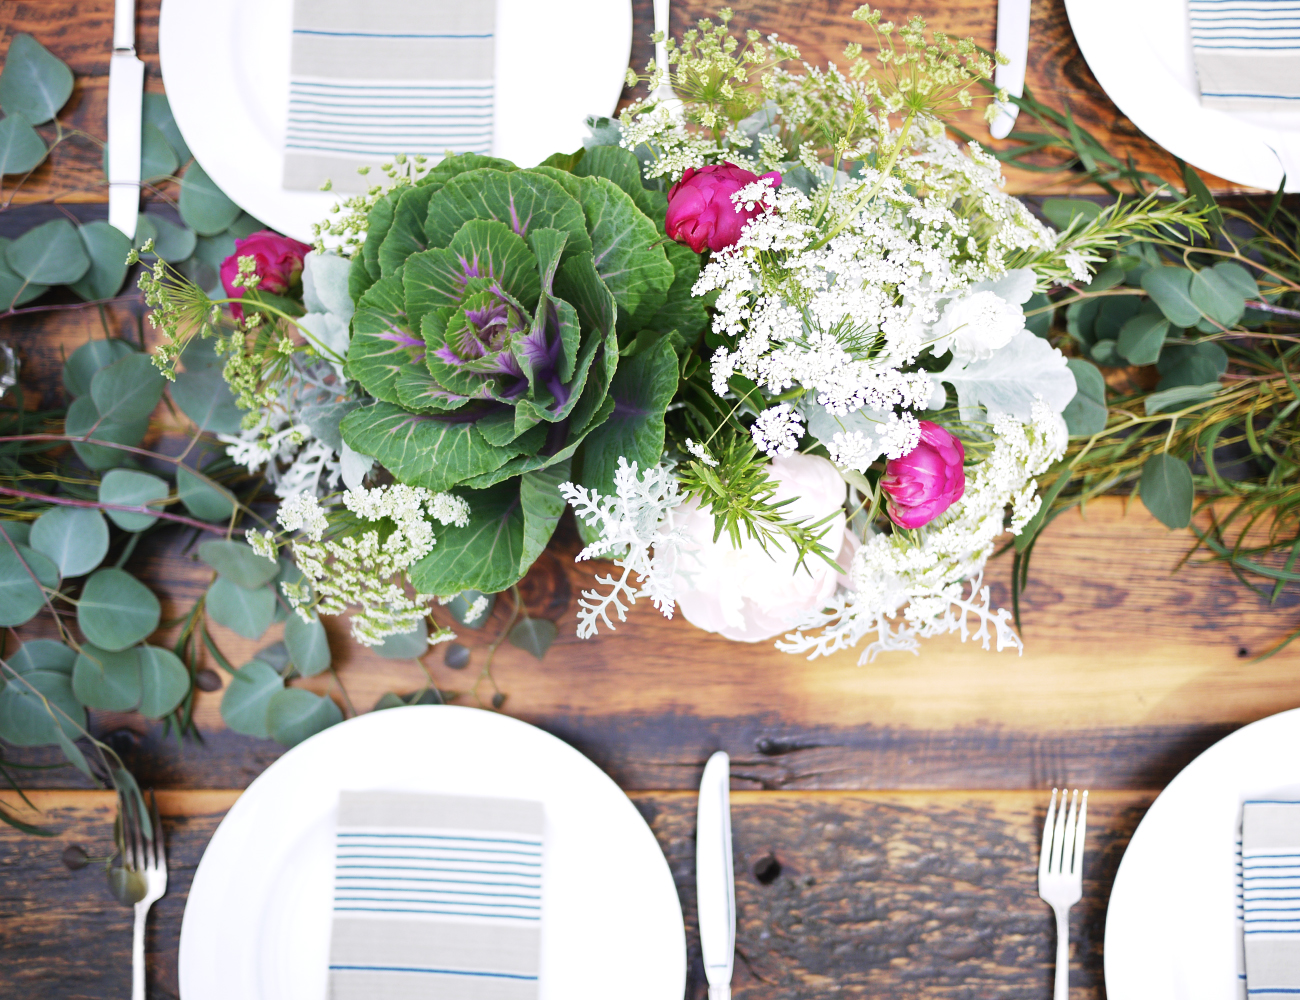 It's easy to make the floral design look great against a  Harvest Table  backdrop! This one features flowering kale, local peonies, queen anne's lace, dusty miller, rosemary, and a few varieties of California eucalyptus.